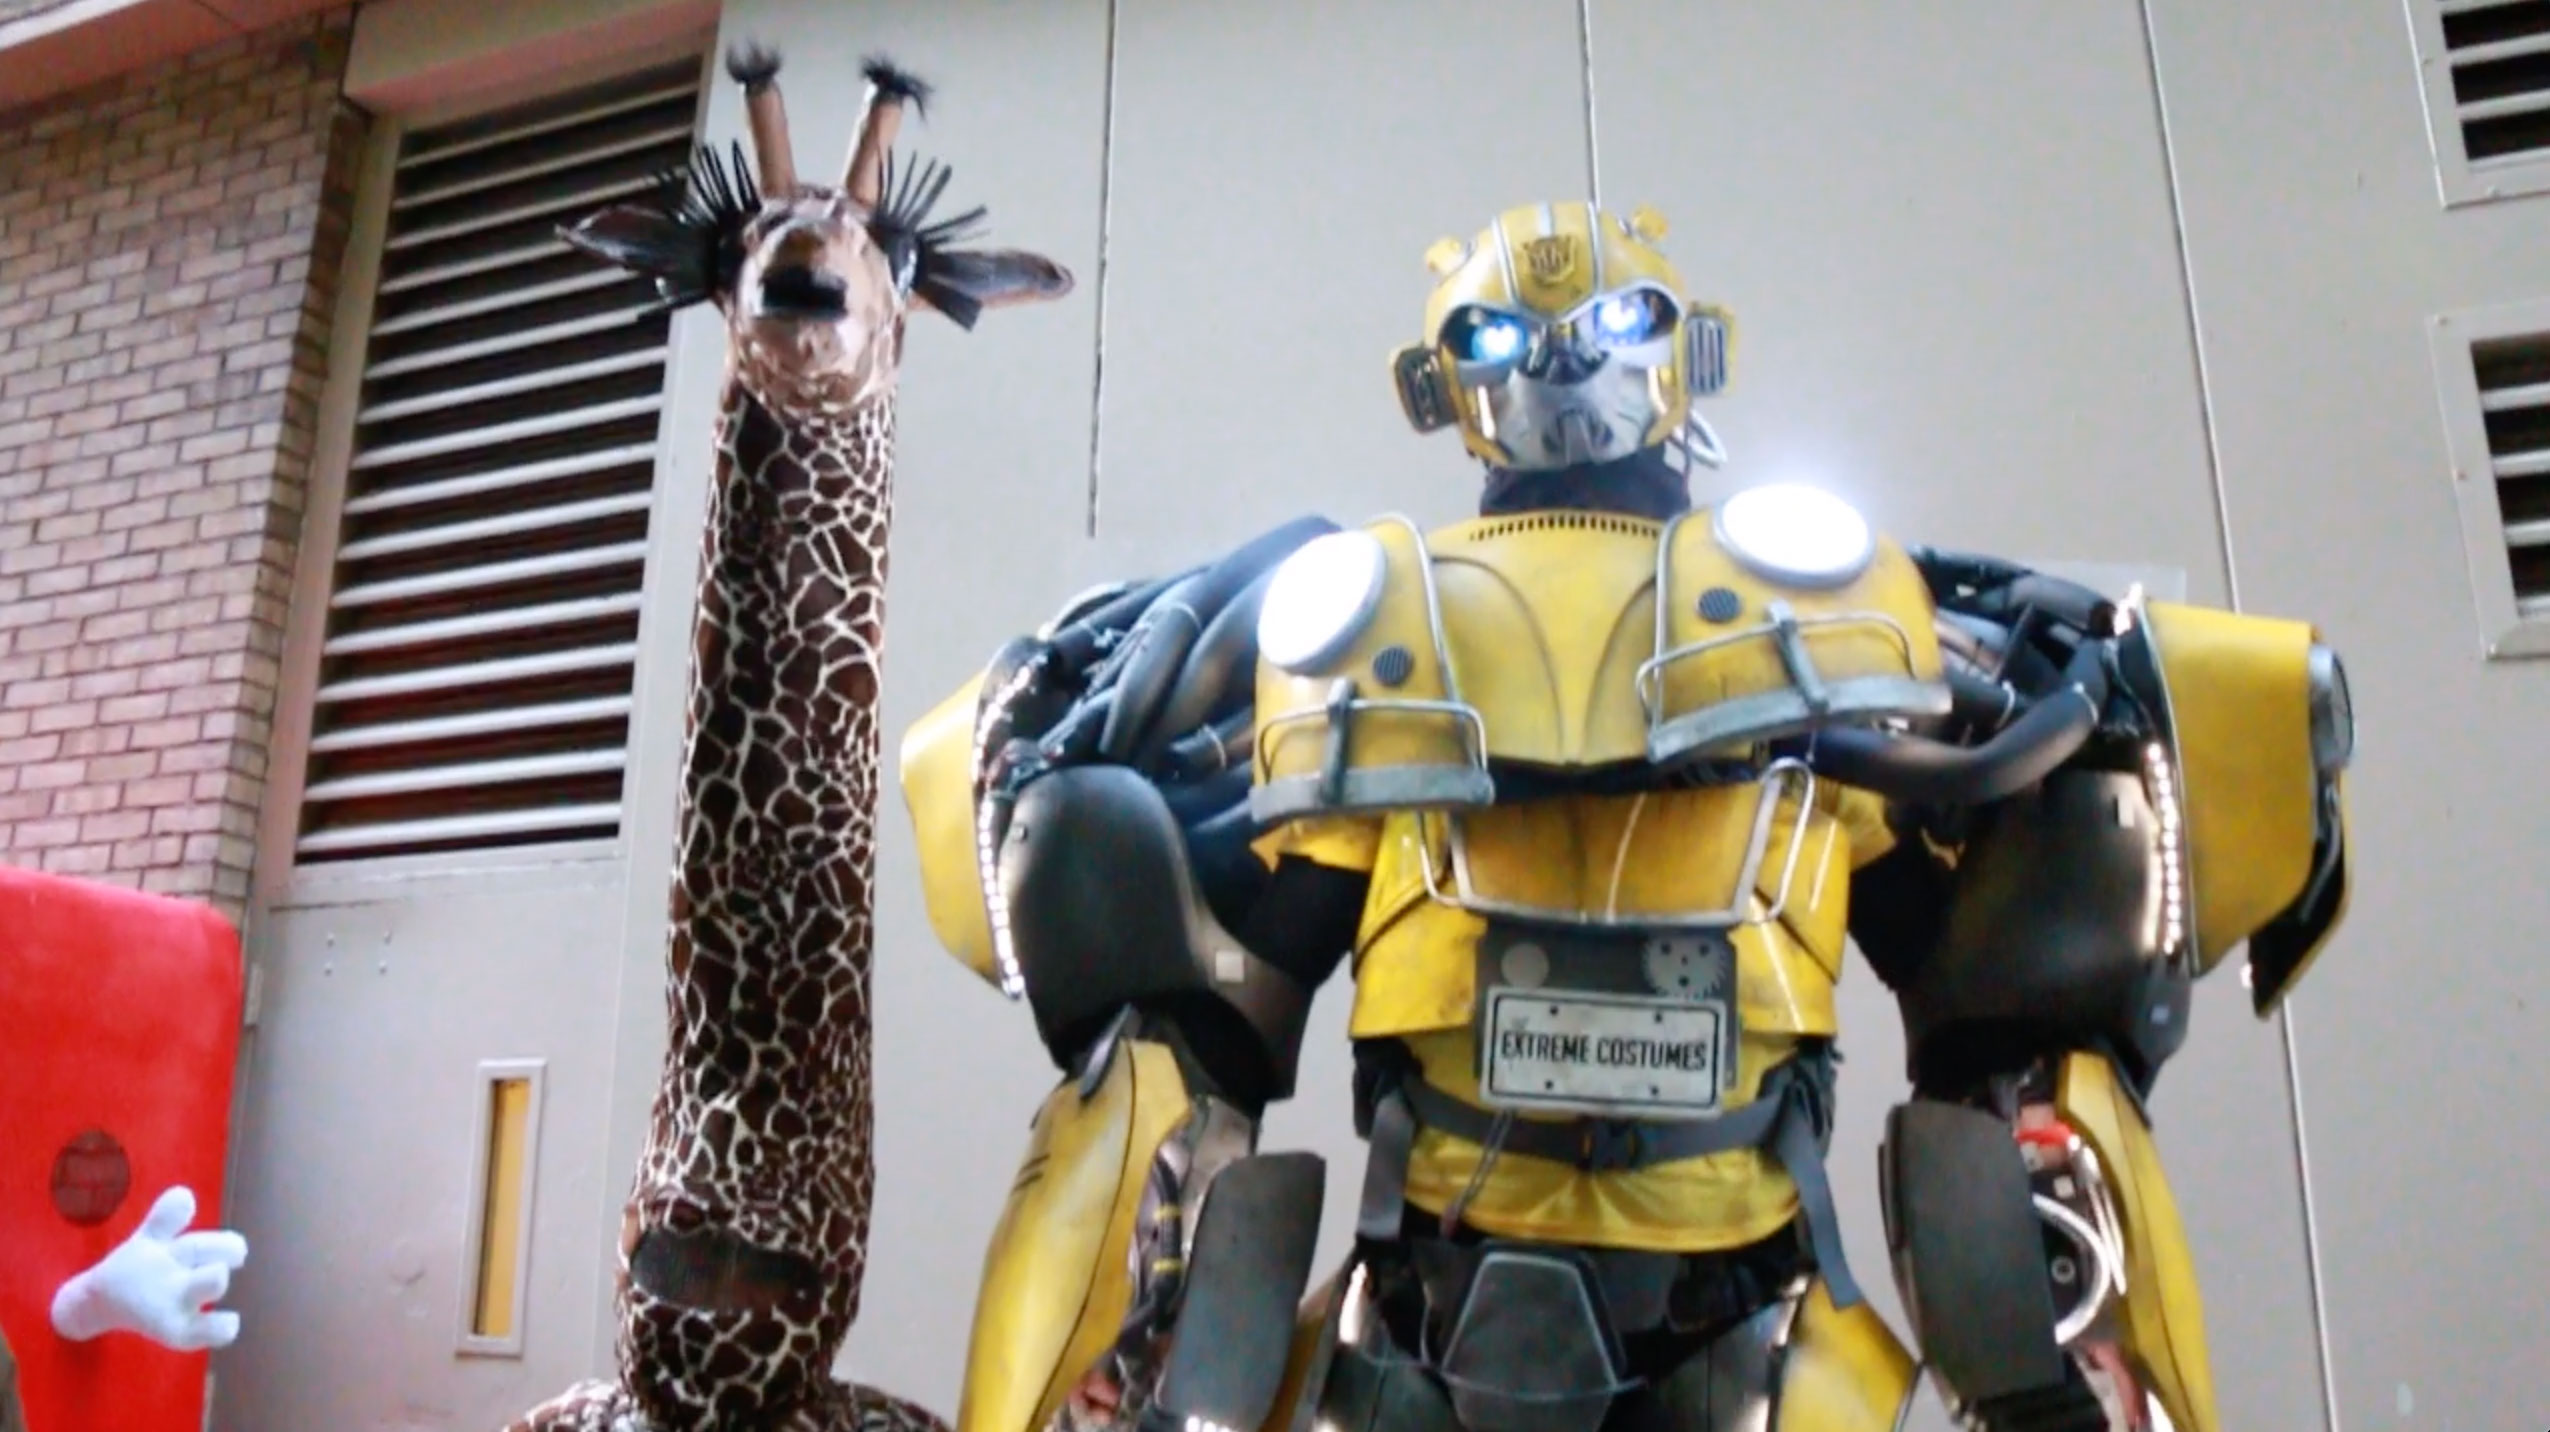 <div class='meta'><div class='origin-logo' data-origin='none'></div><span class='caption-text' data-credit=''>Bumblebee and Geraldine the Giraffe towered over many of the other contestants.</span></div>